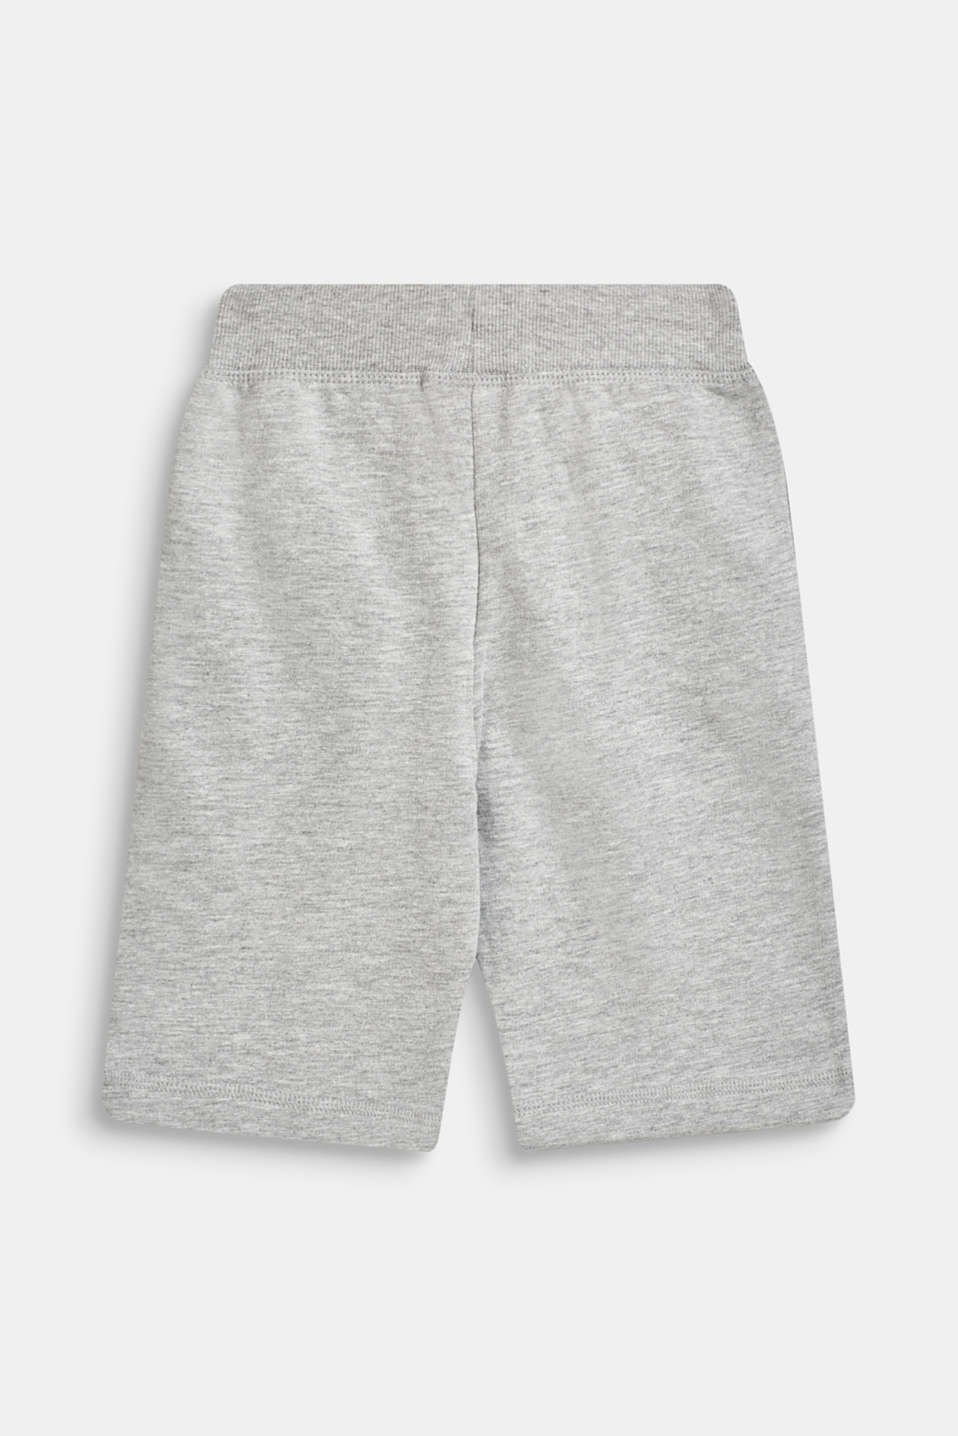 Shorts knitted, LCHEATHER SILVER, detail image number 1